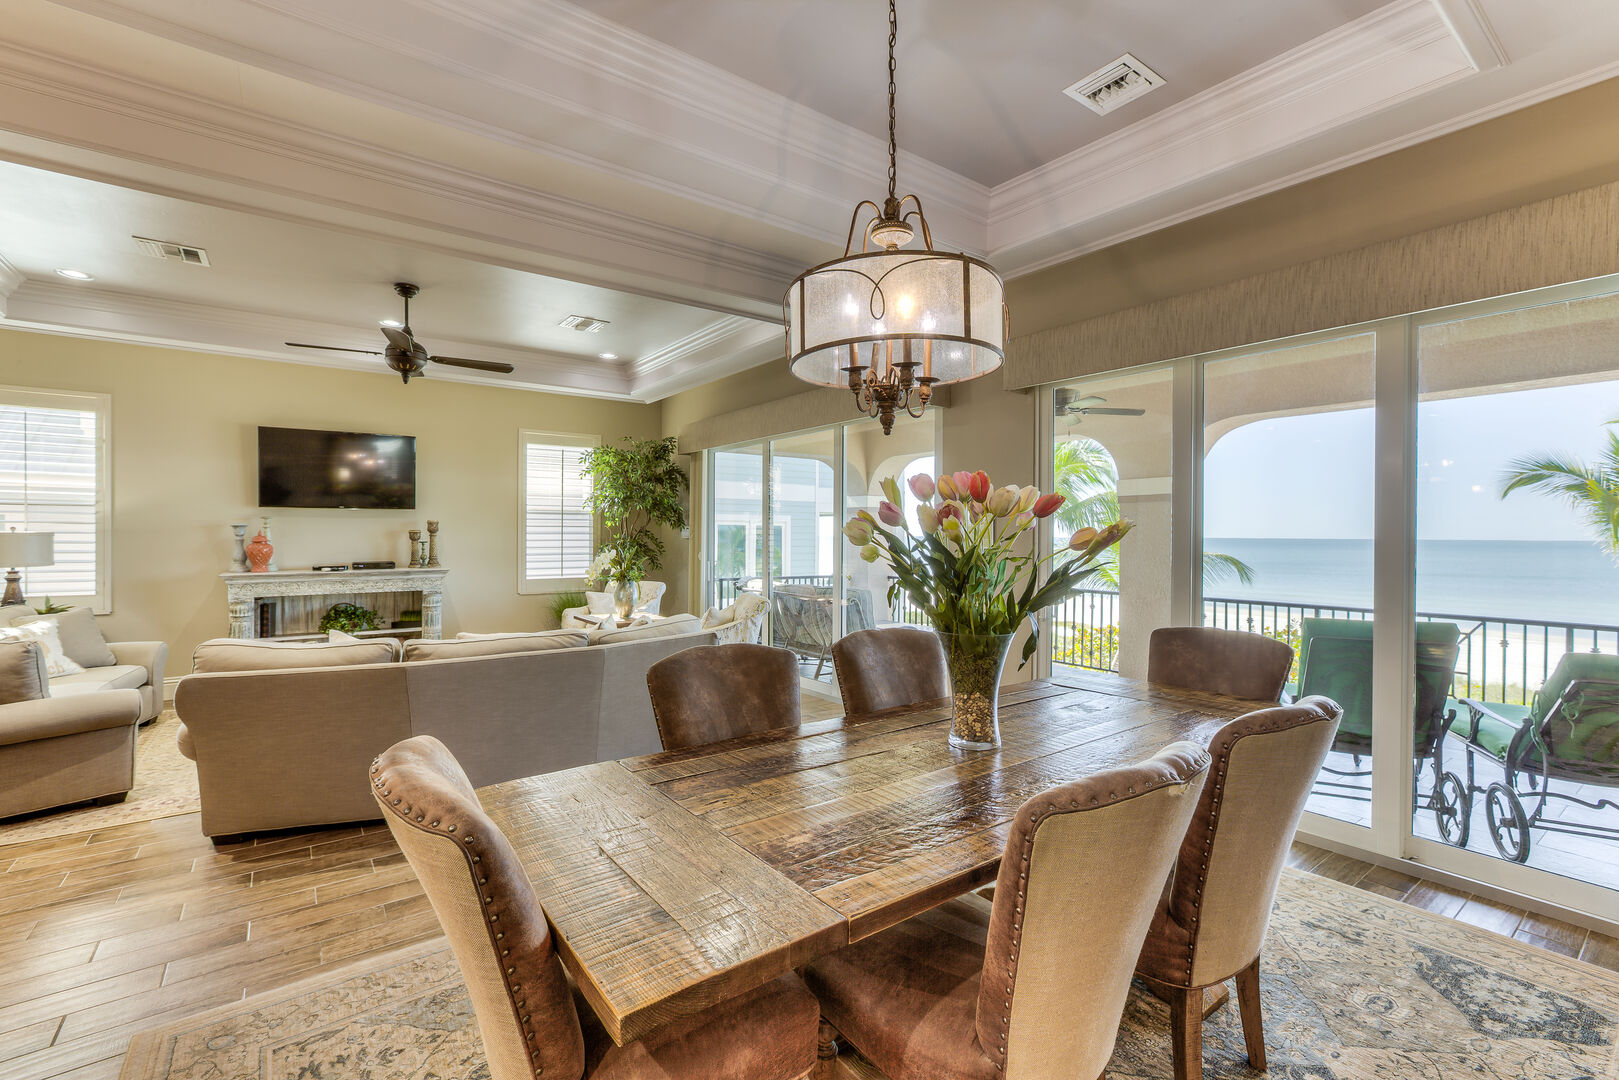 Dining room with view into living room and balcony in our Fort Myers vacation home rental